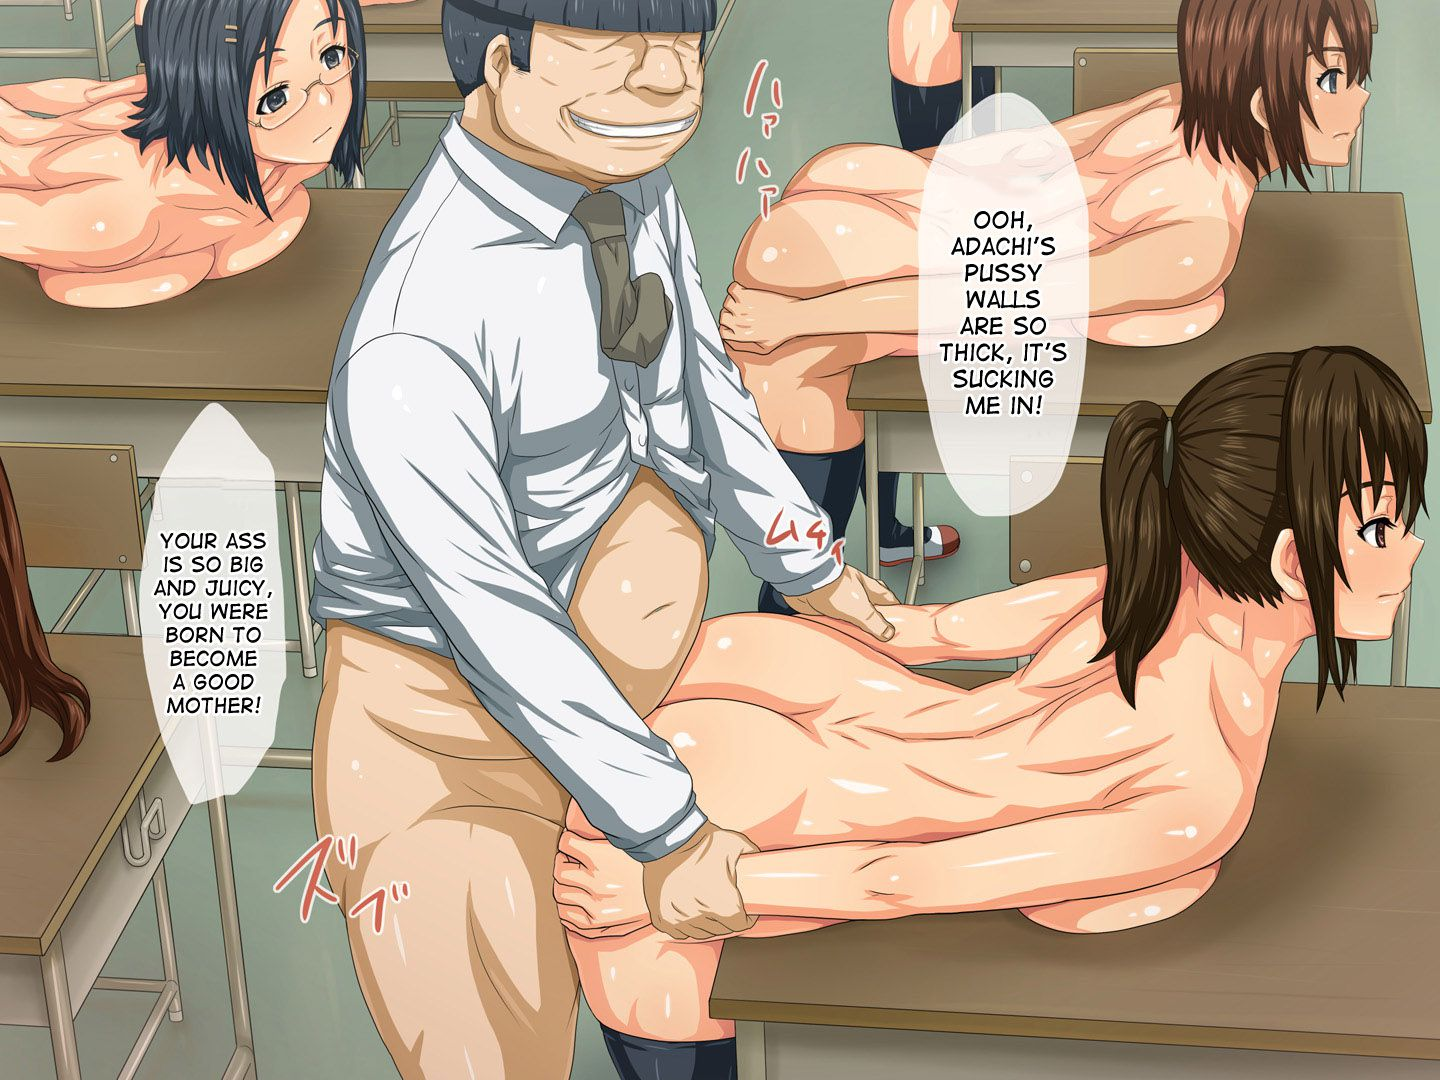 page 21 | the disgusting teacher used hypnosis to impregnate all the